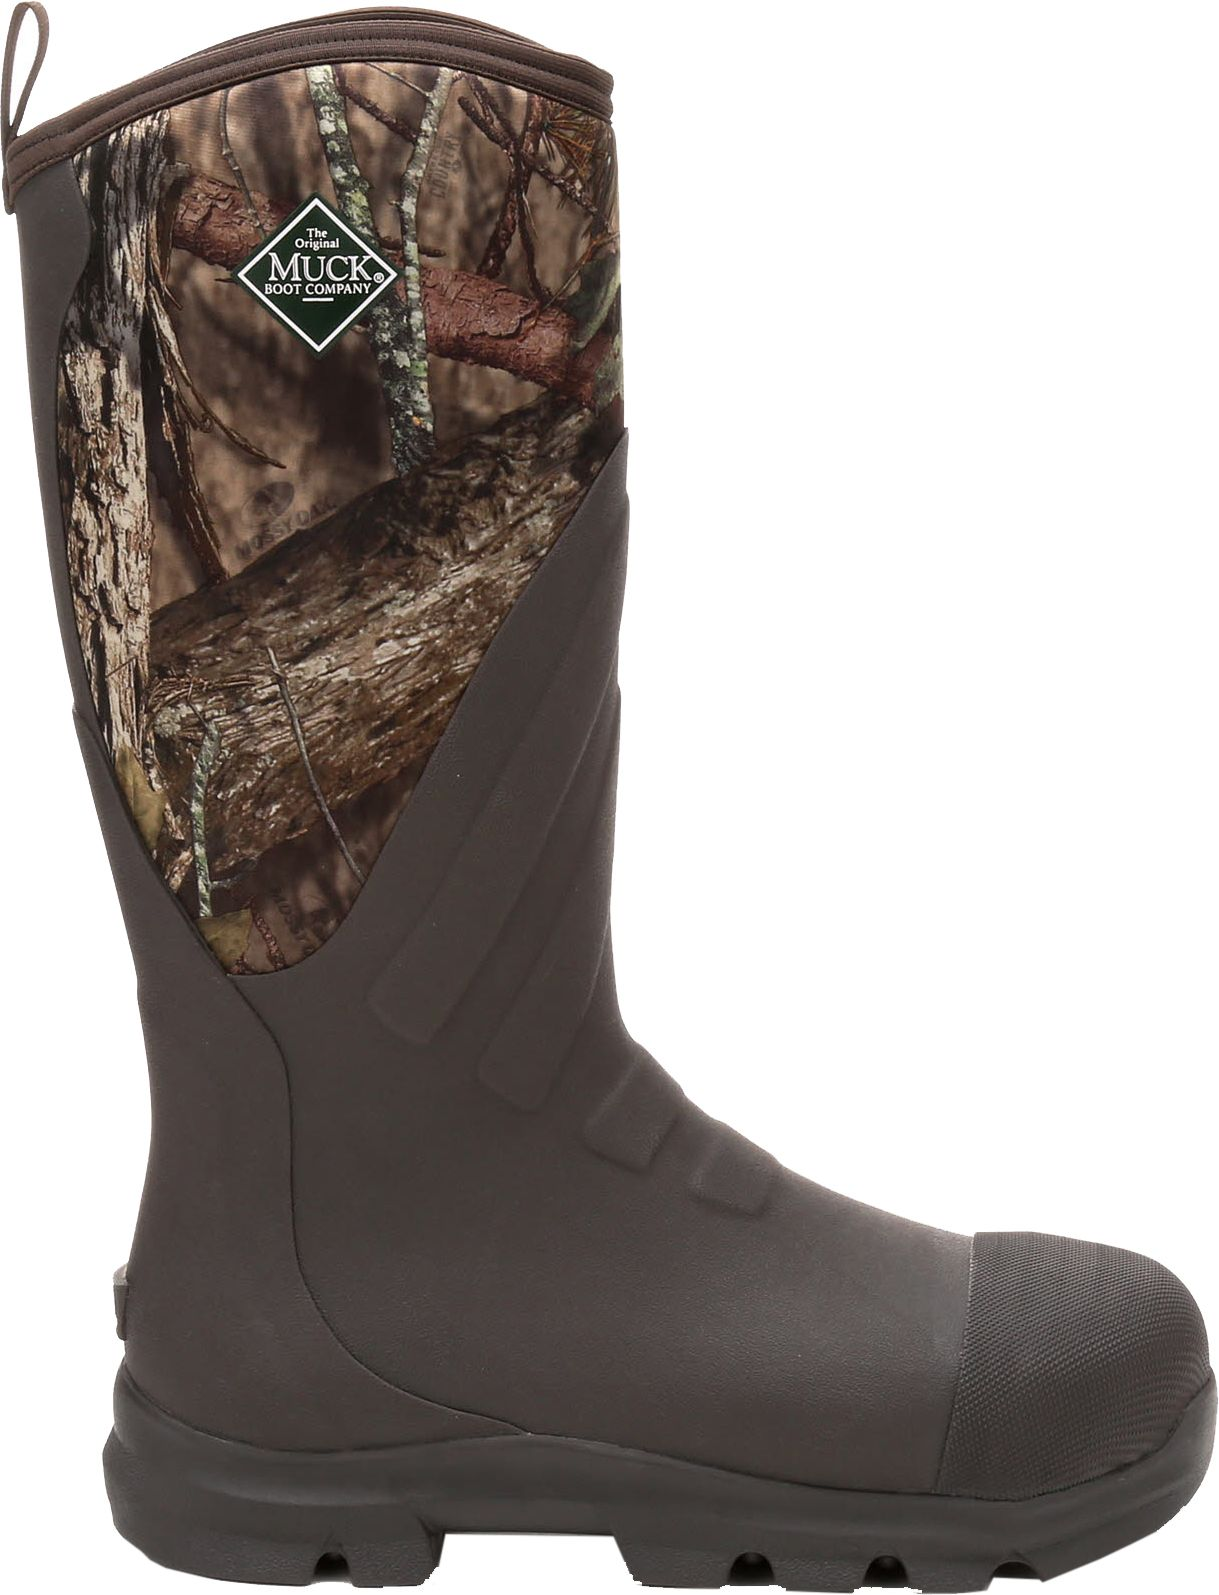 Muck Boots Camo - Cr Boot